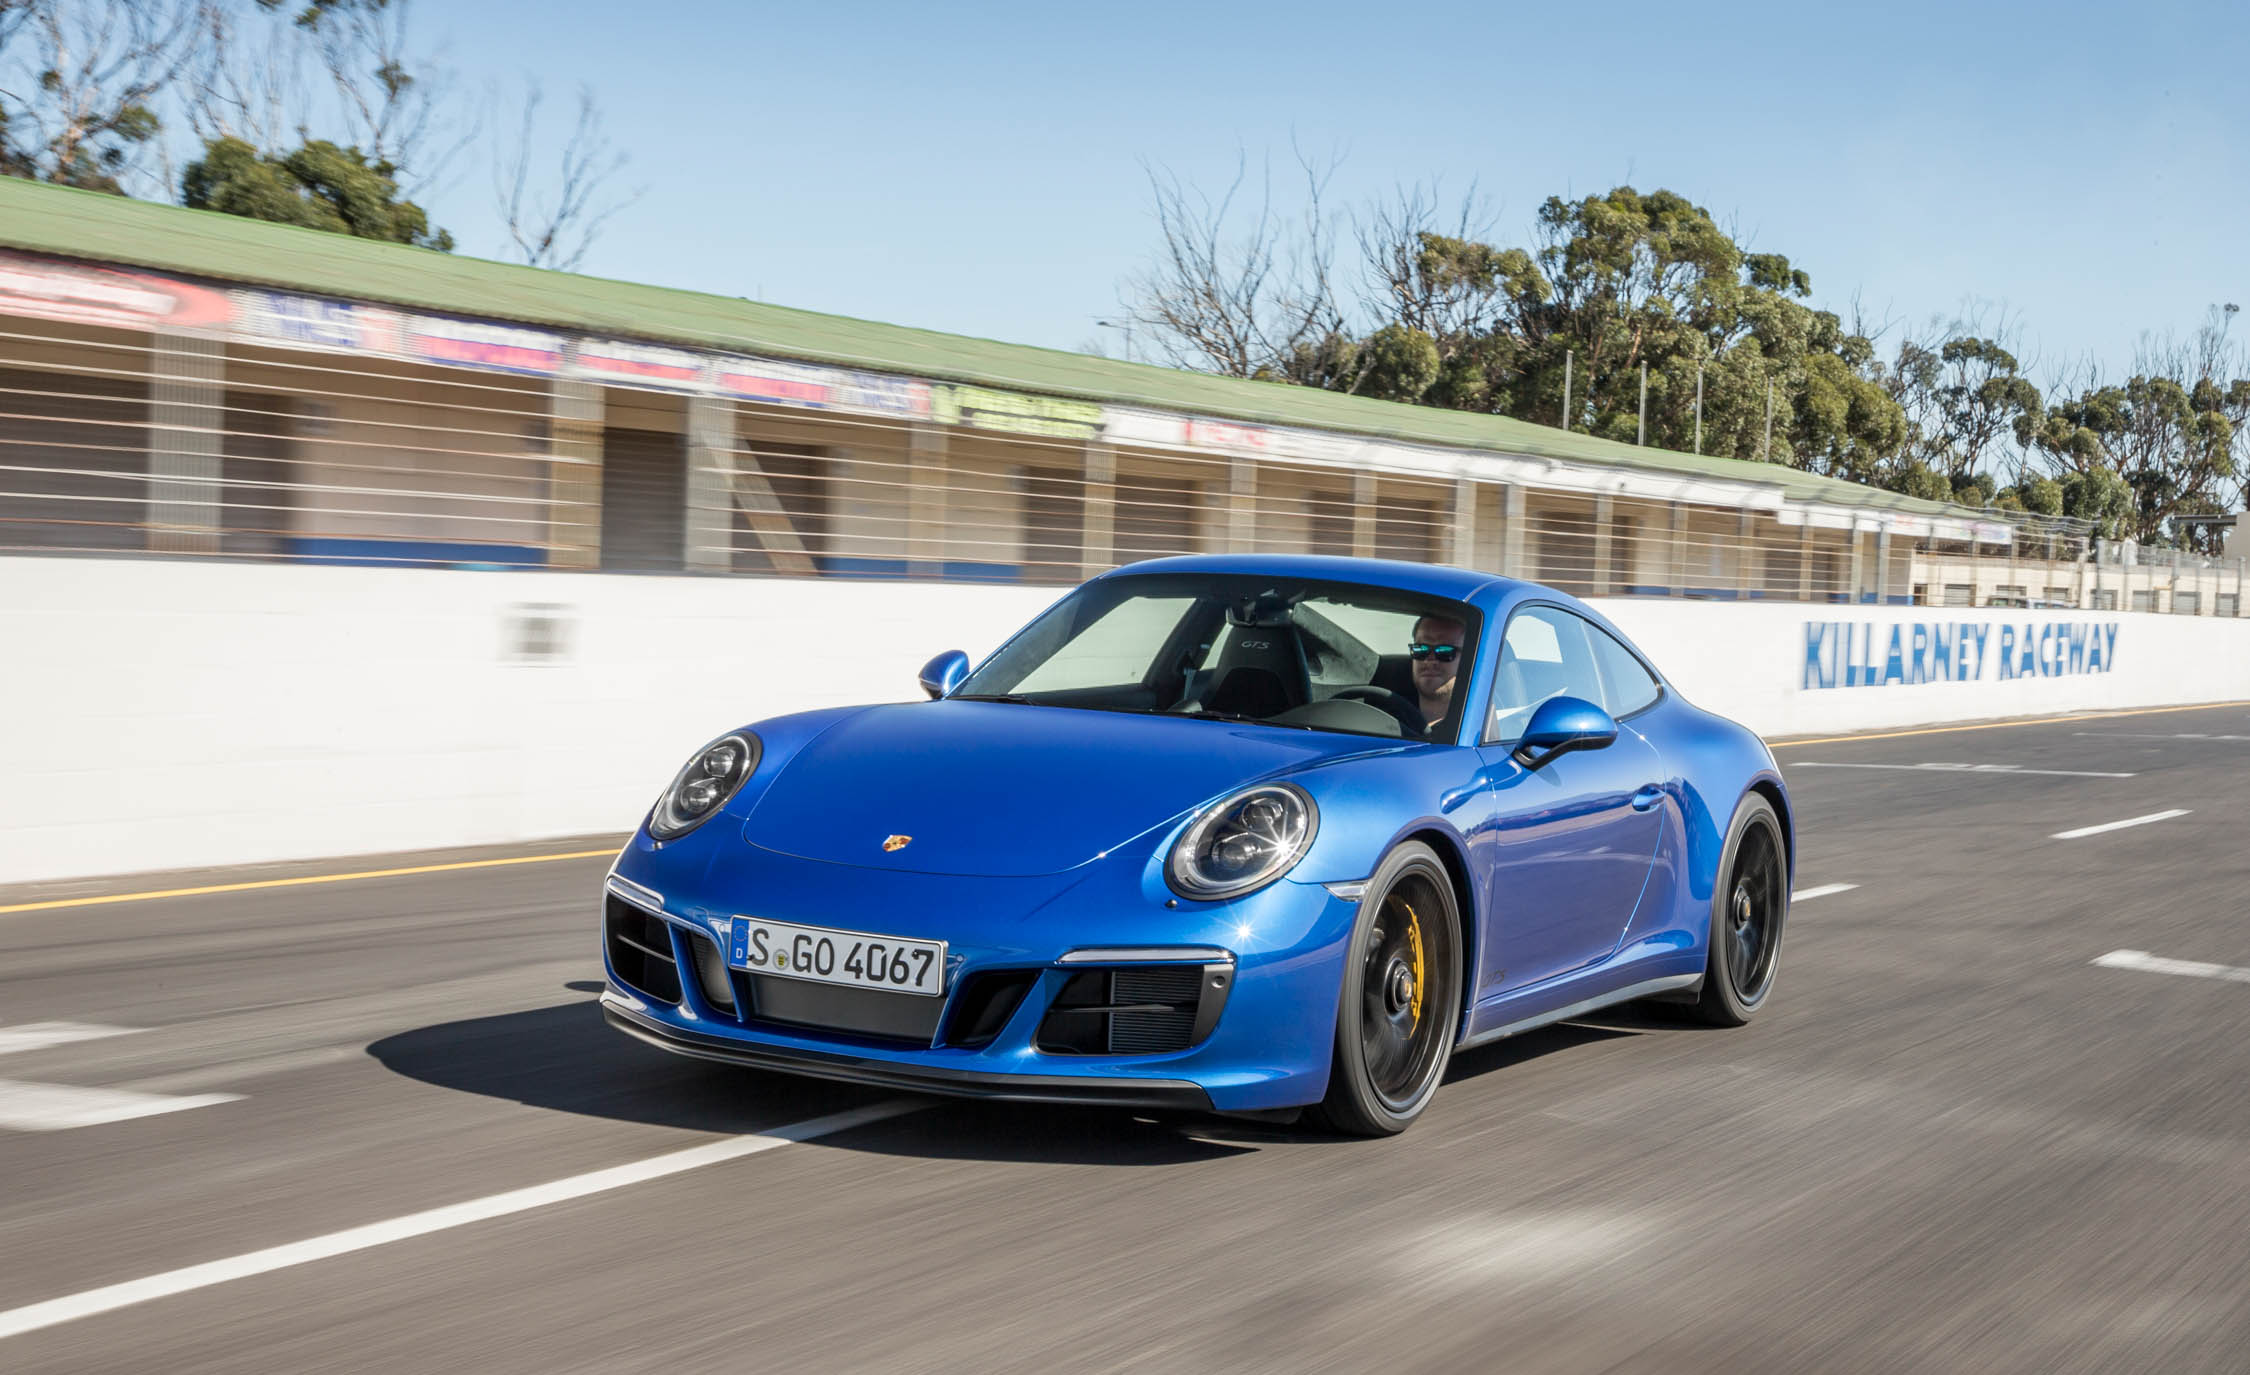 2017 Porsche 911 Carrera 4 GTS Coupe Test Drive (Photo 25 of 97)